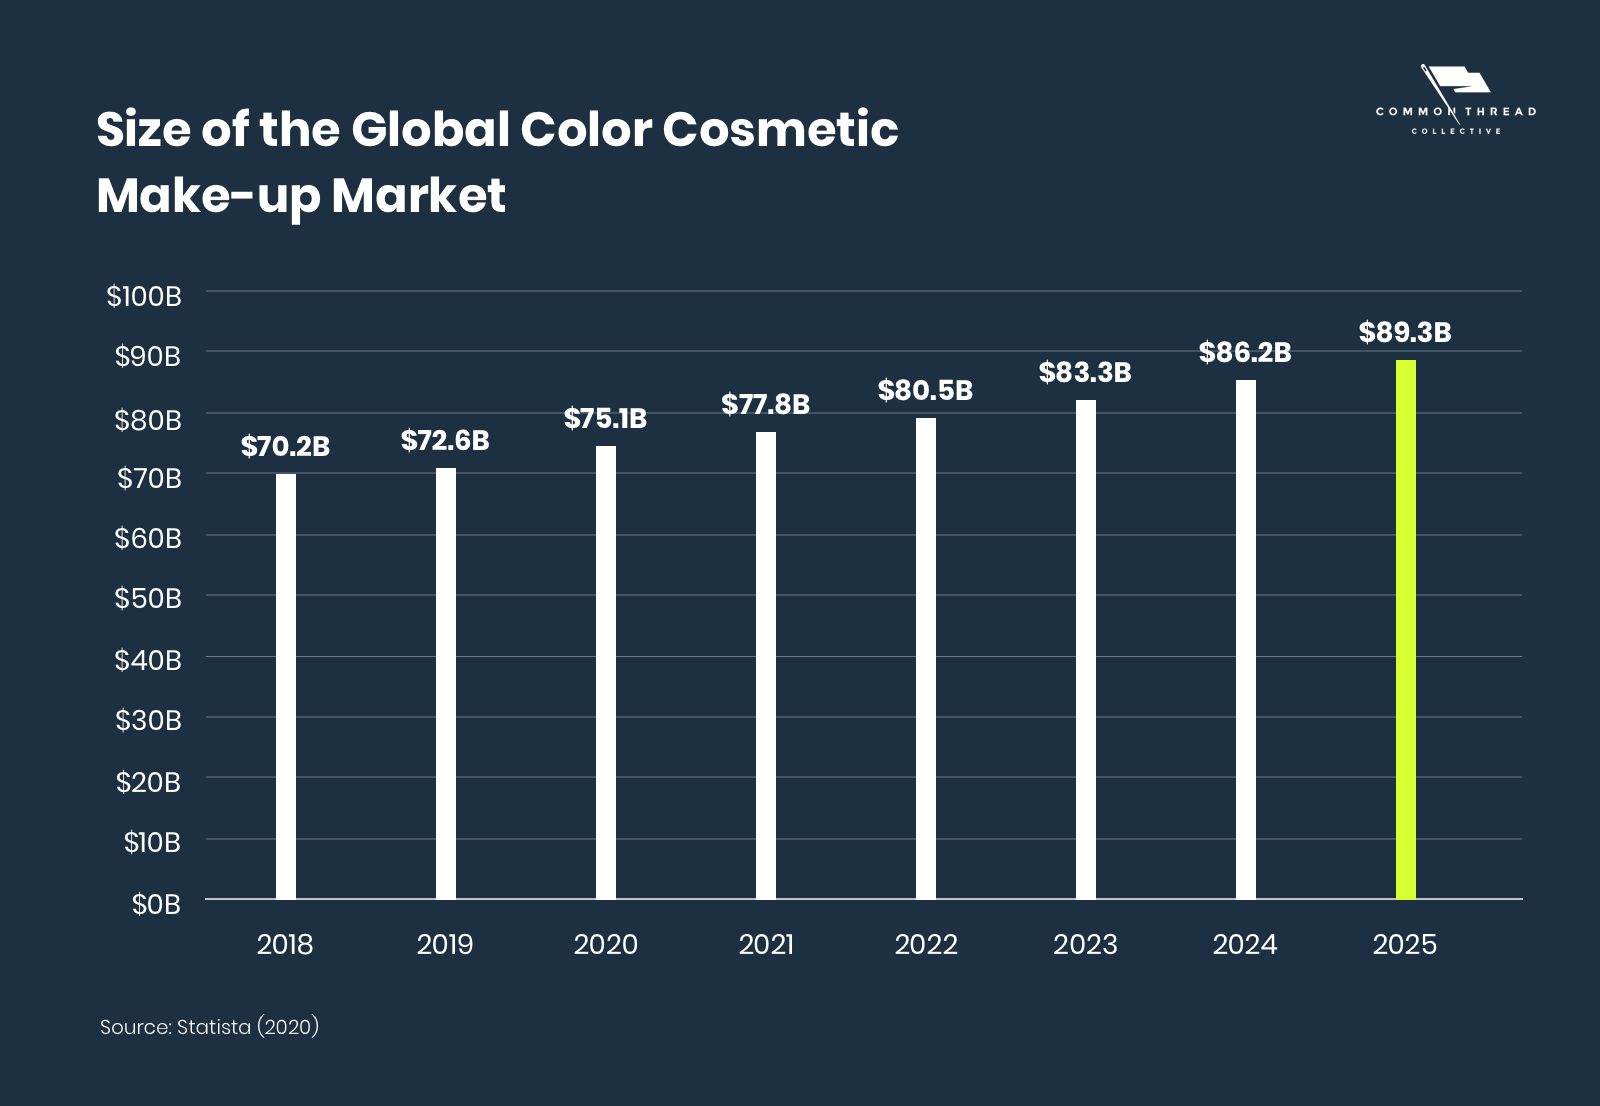 Size of the Global Color Make-Up Cosmetic Market